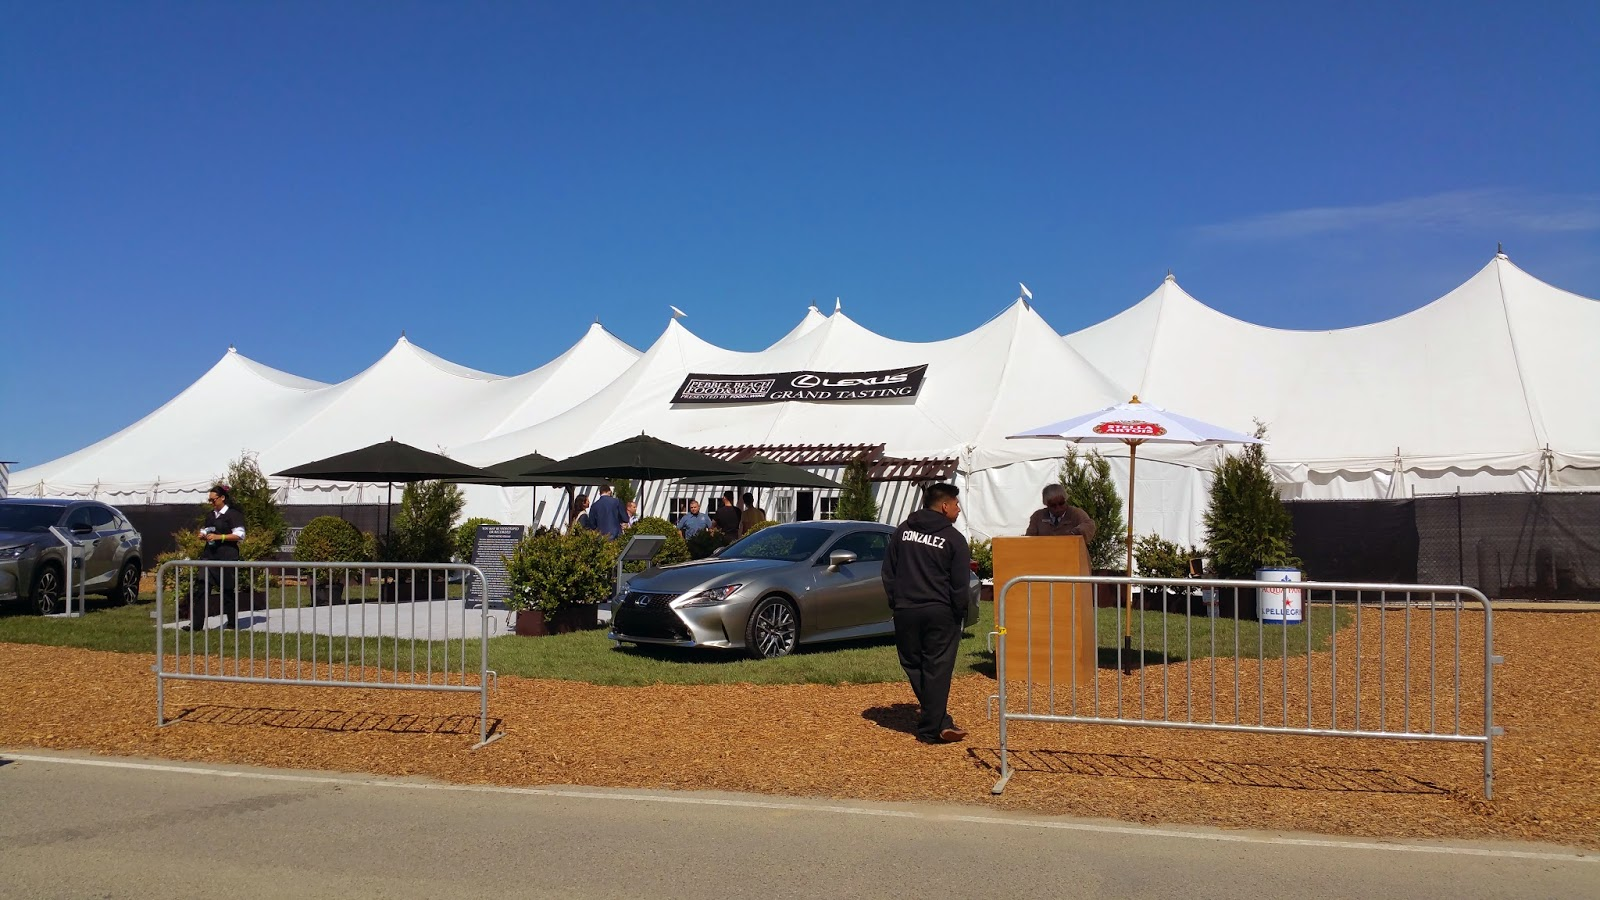 Sacramento Shines at Pebble Beach Food & Wine